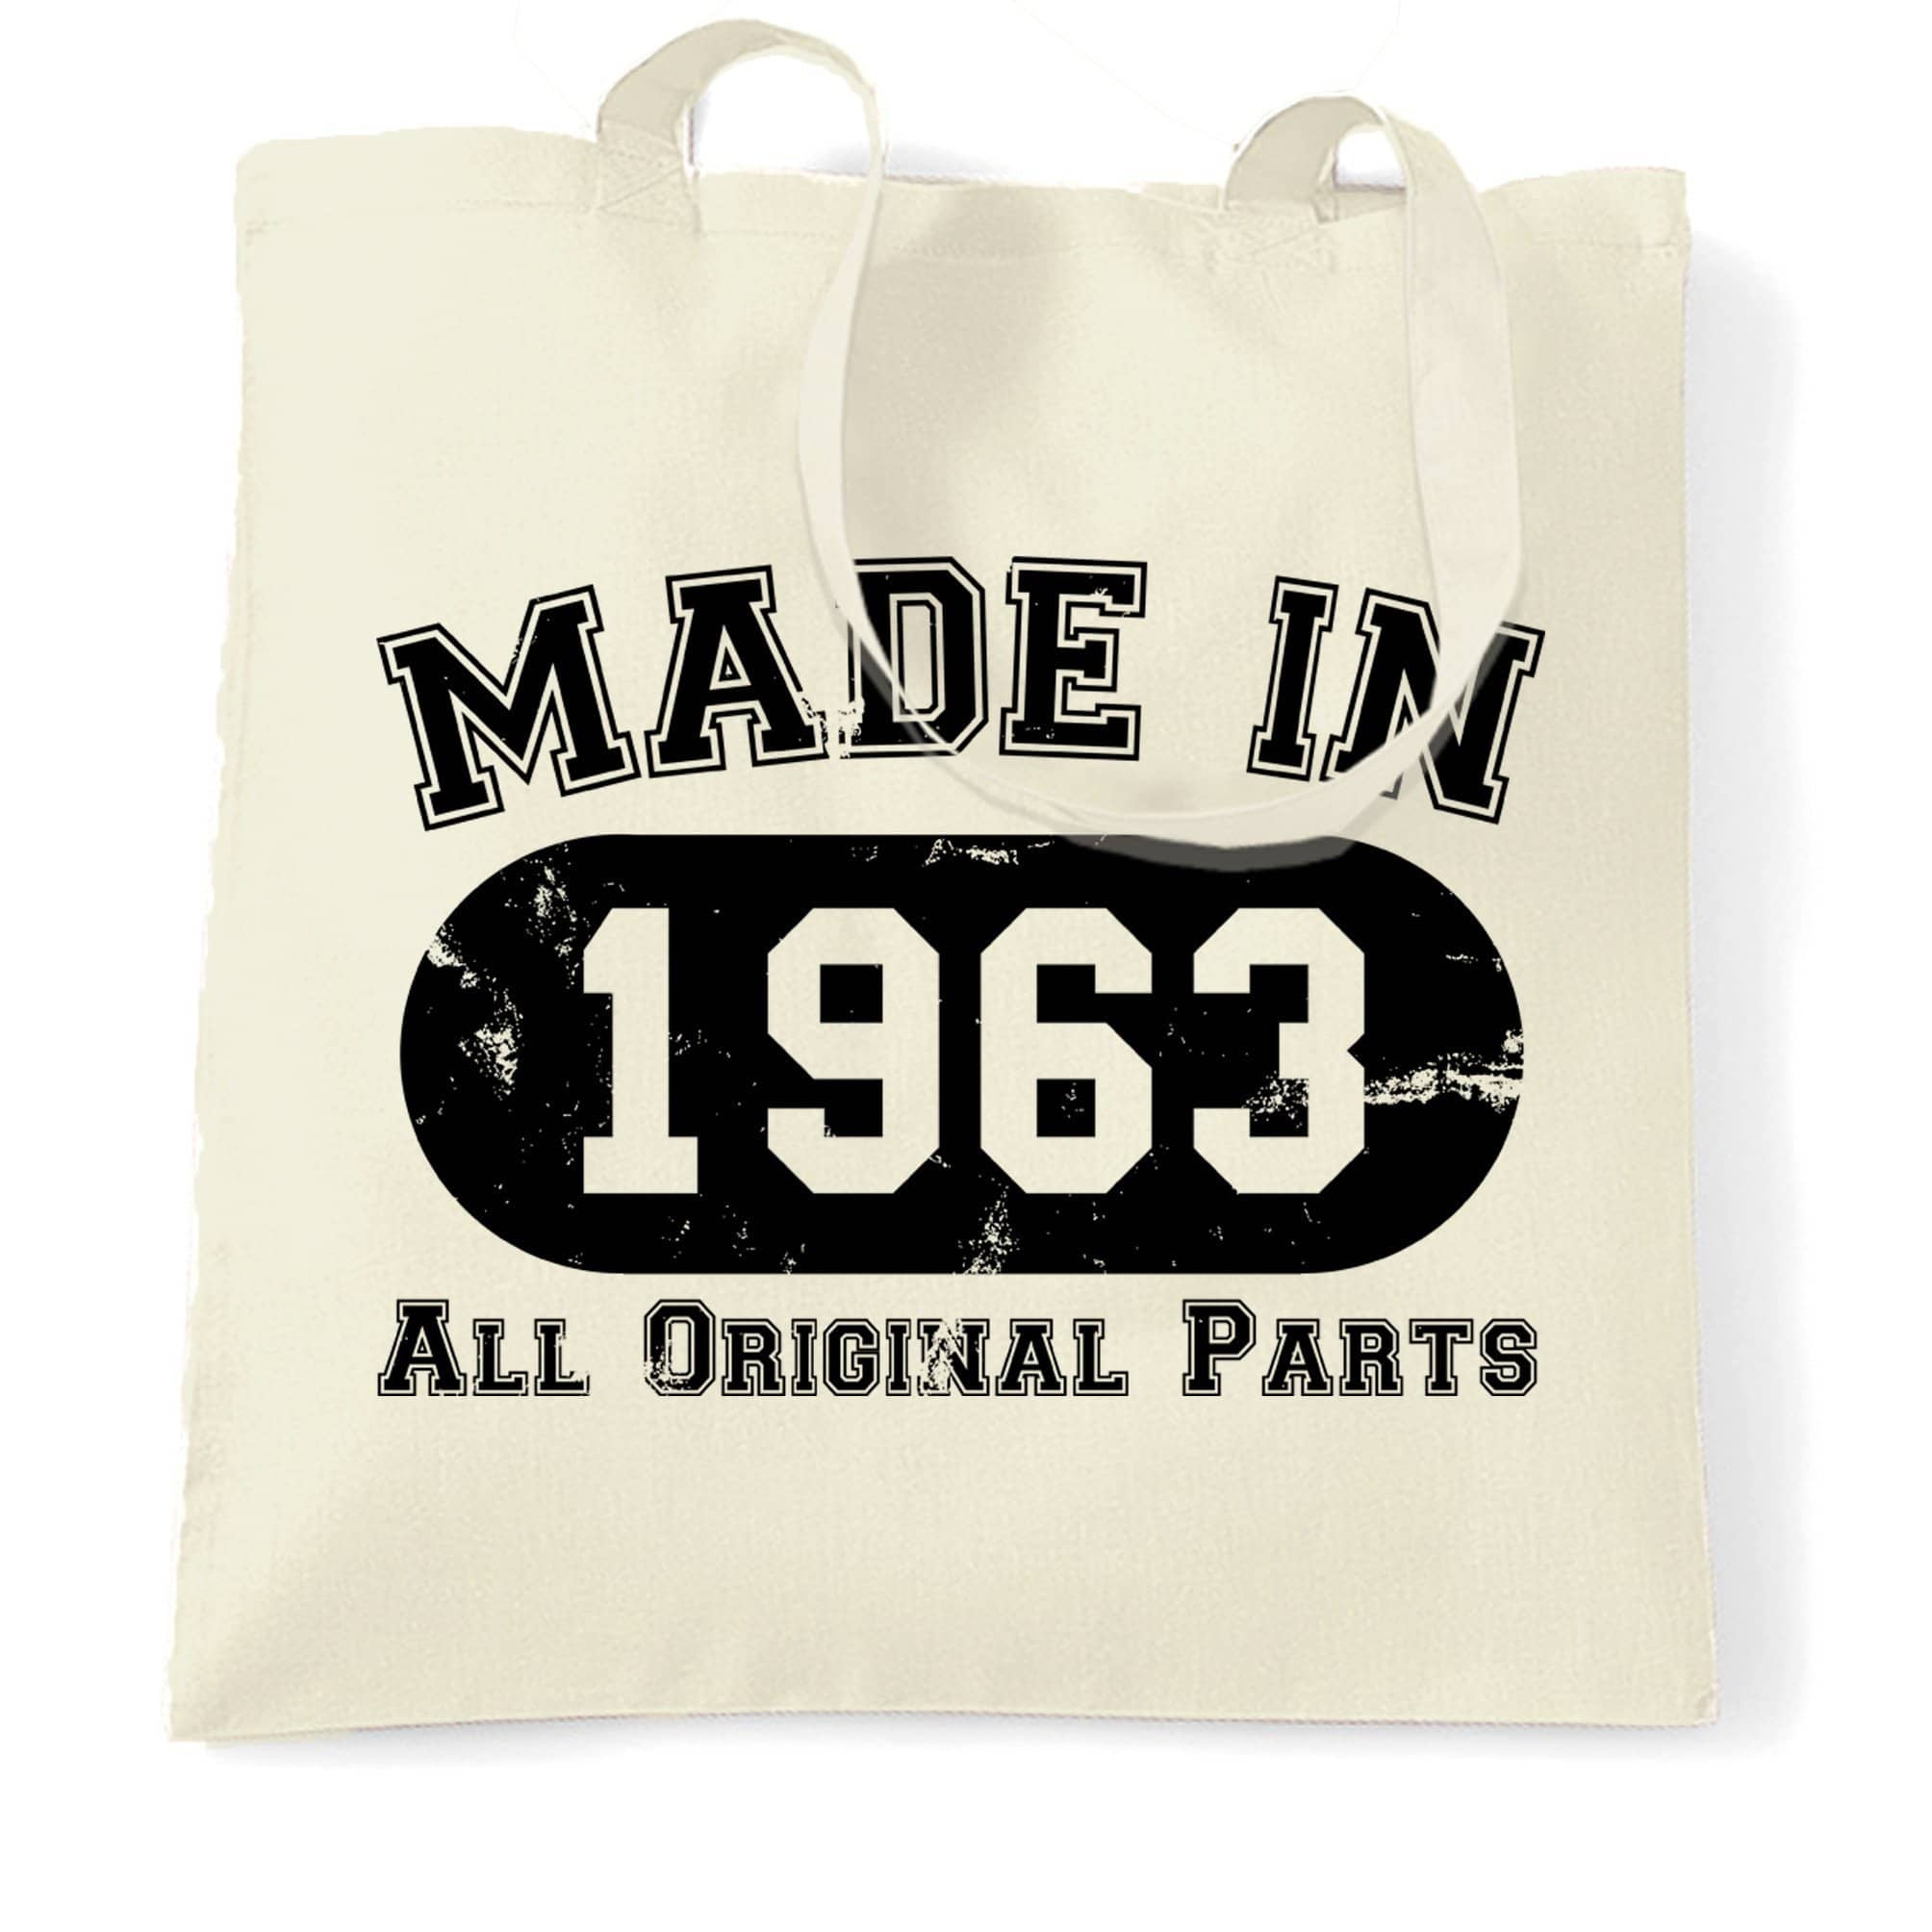 Made in 1963 All Original Parts Tote Bag [Distressed]